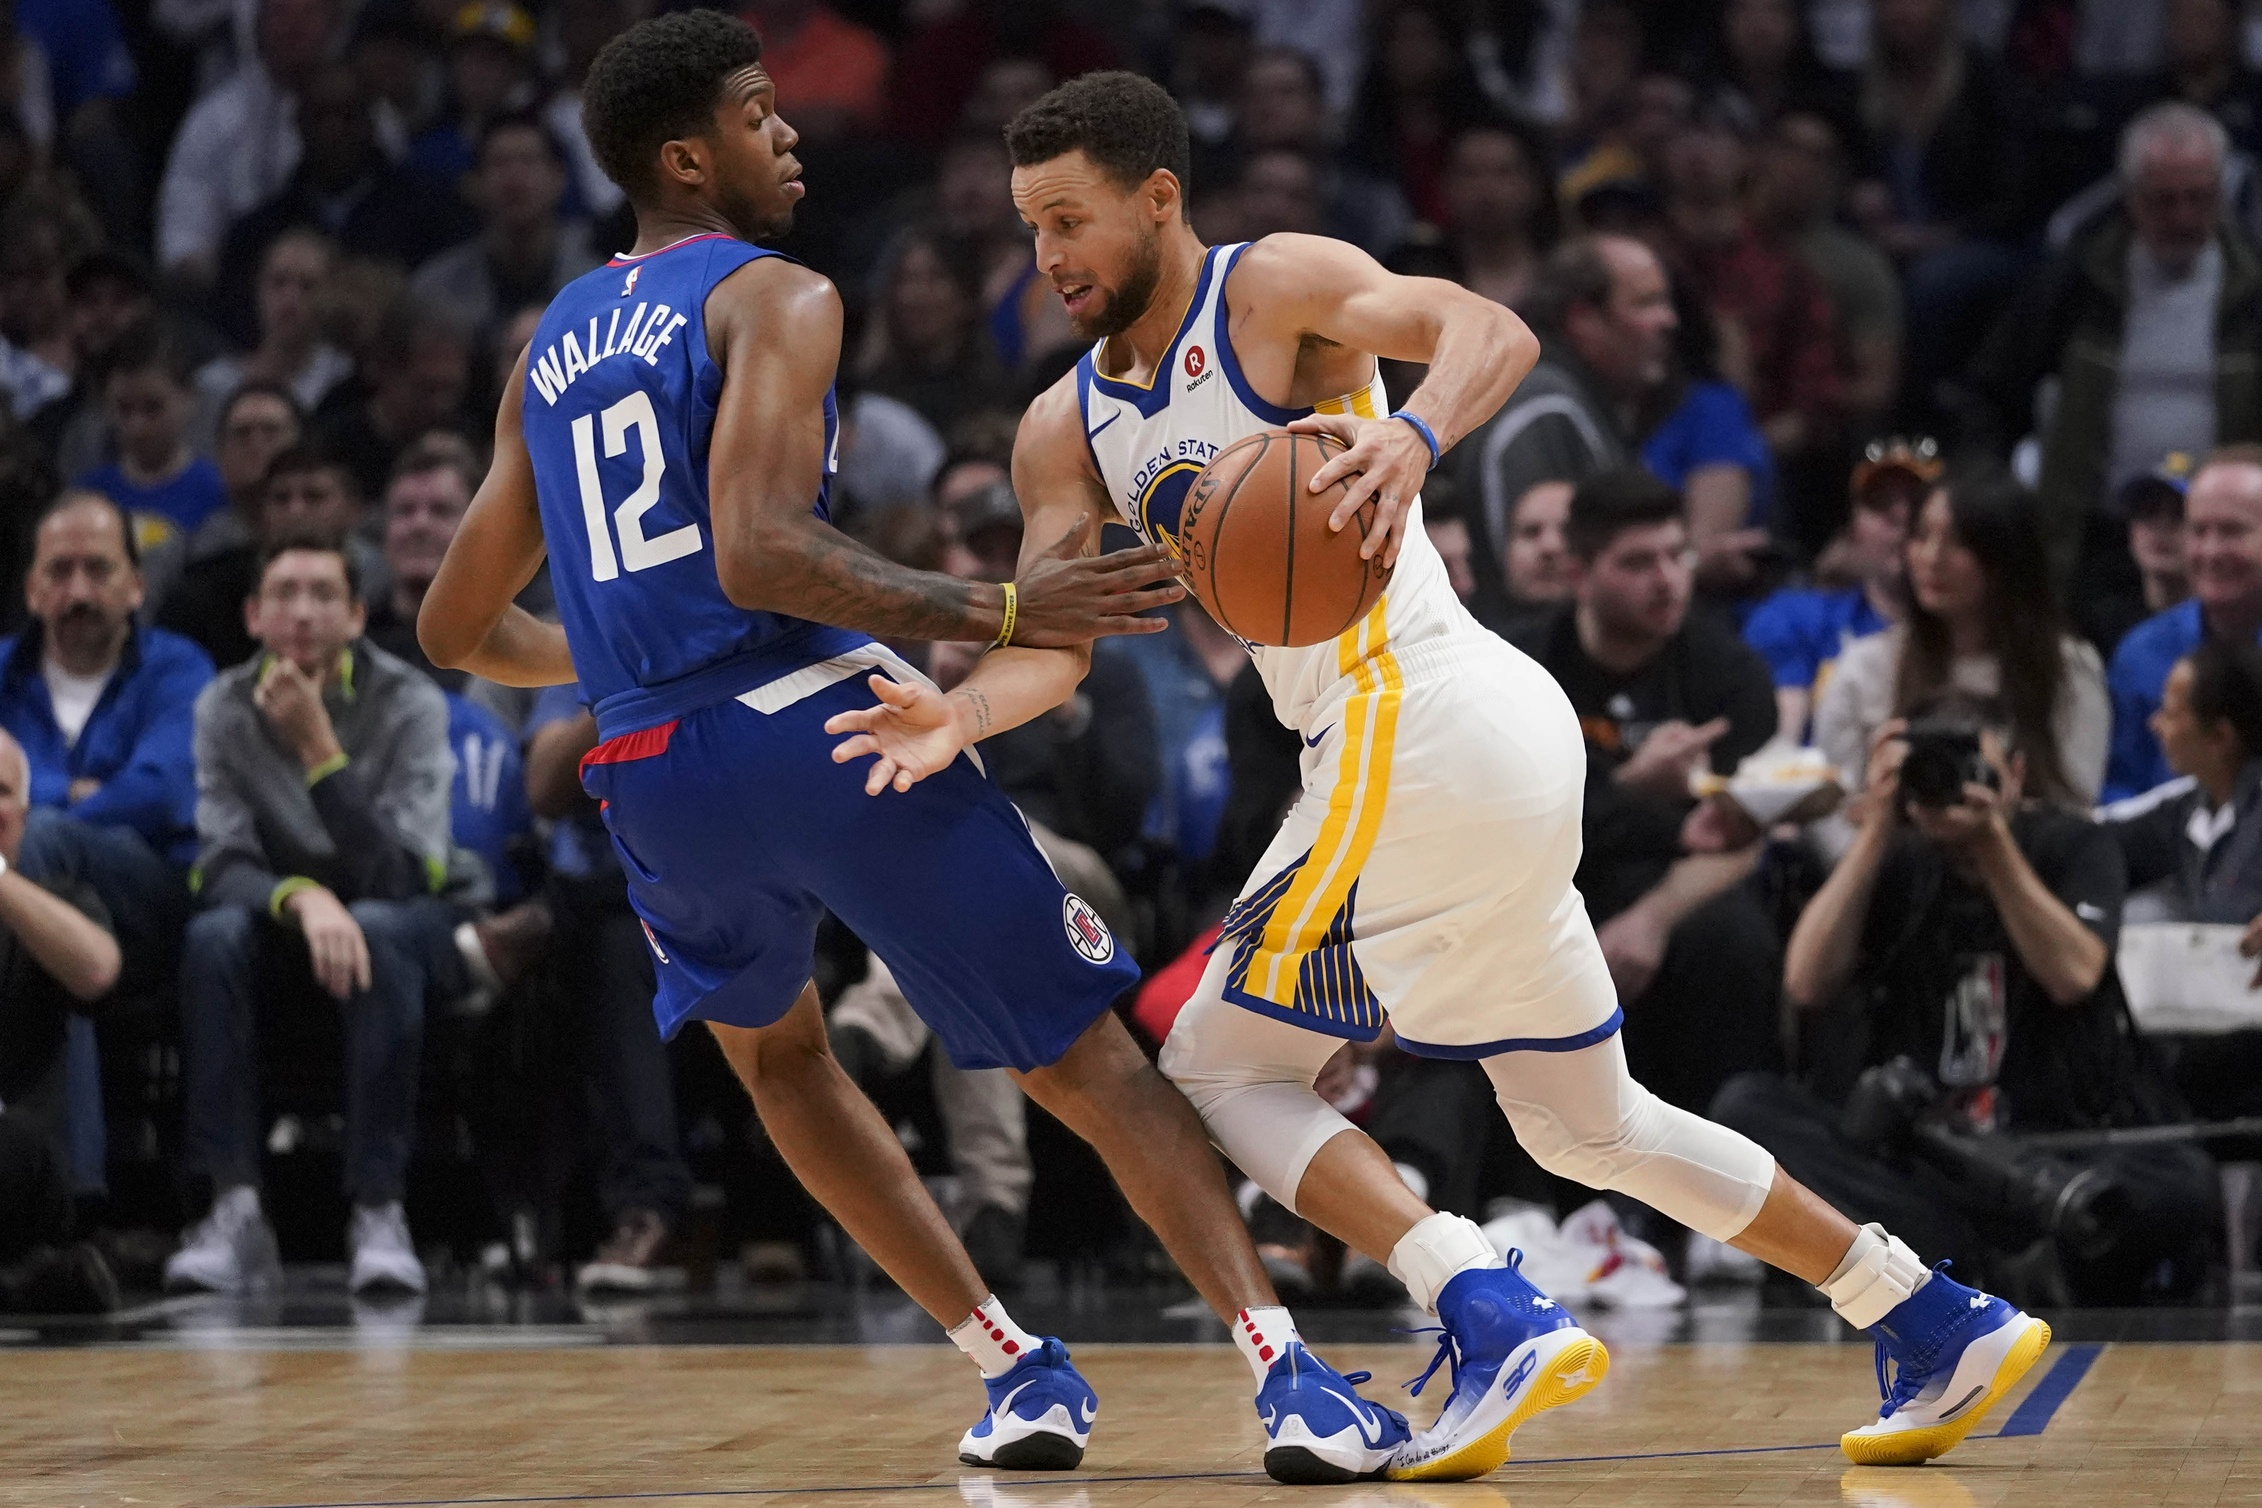 Tips Before Tipoff: Clippers at Warriors